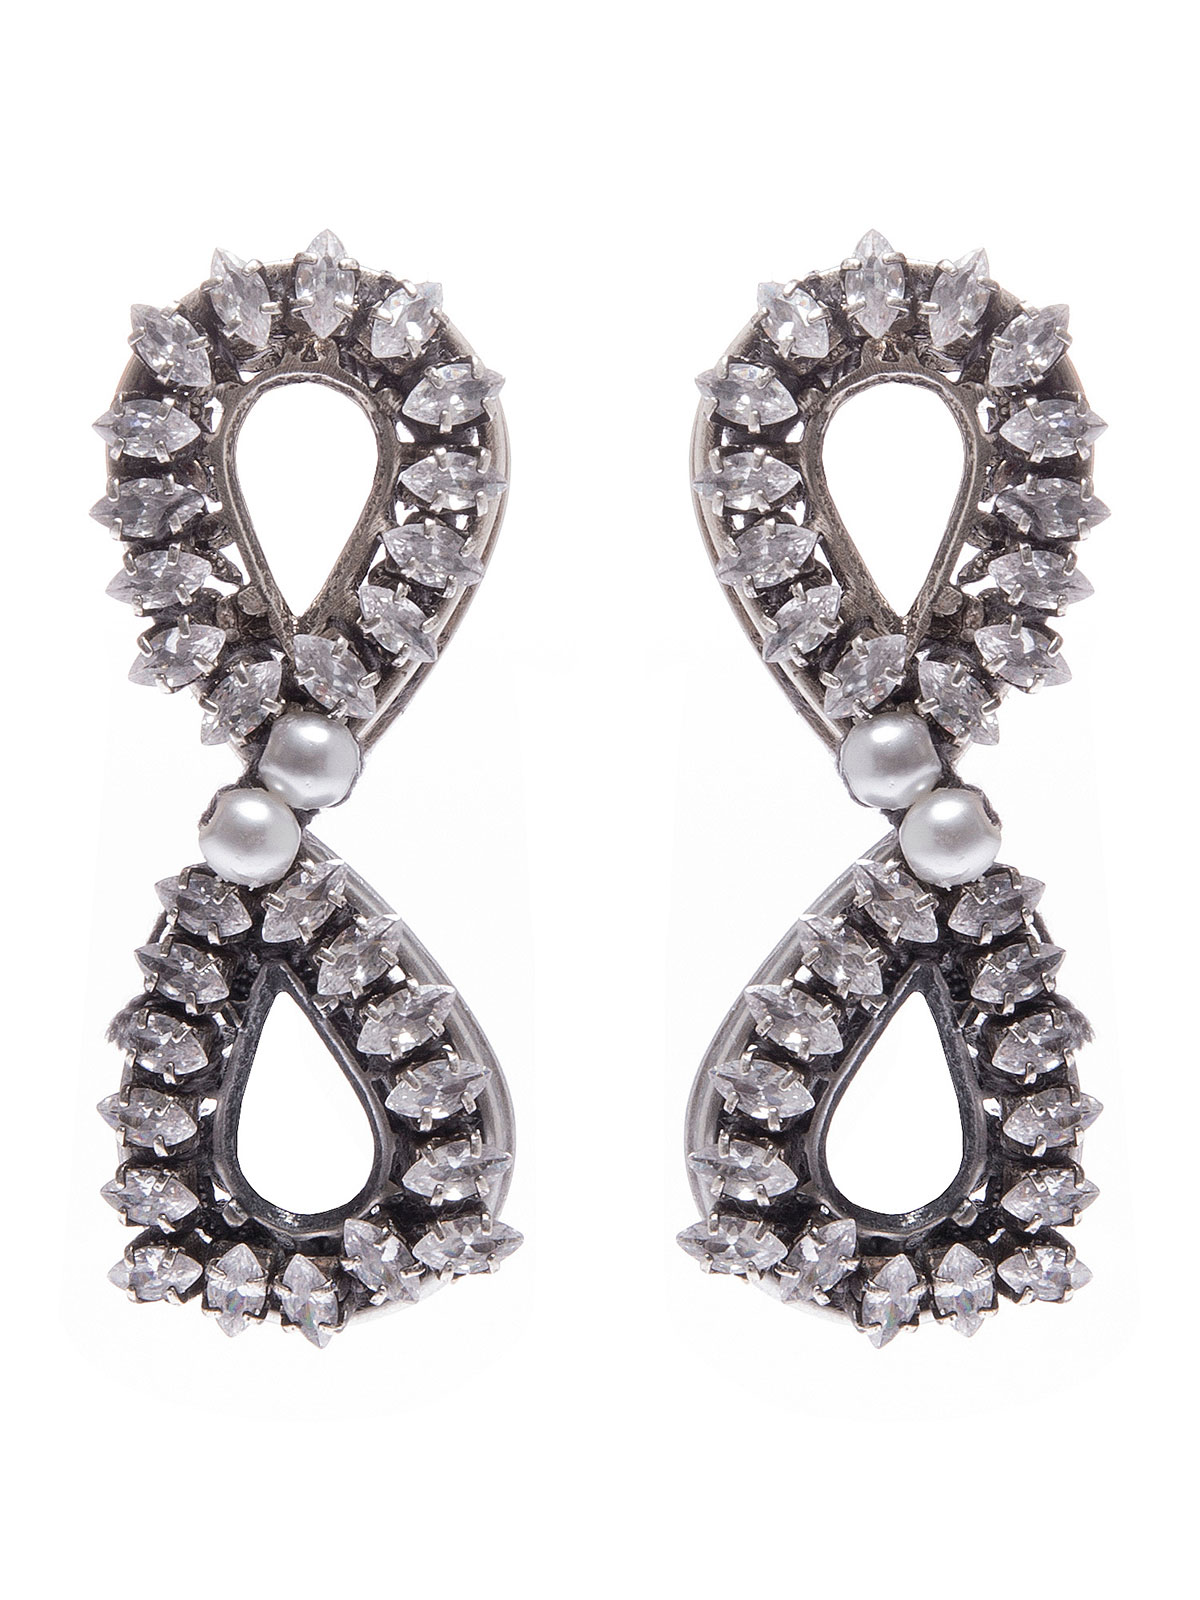 Double drop earrings embellished with crystals and pearls